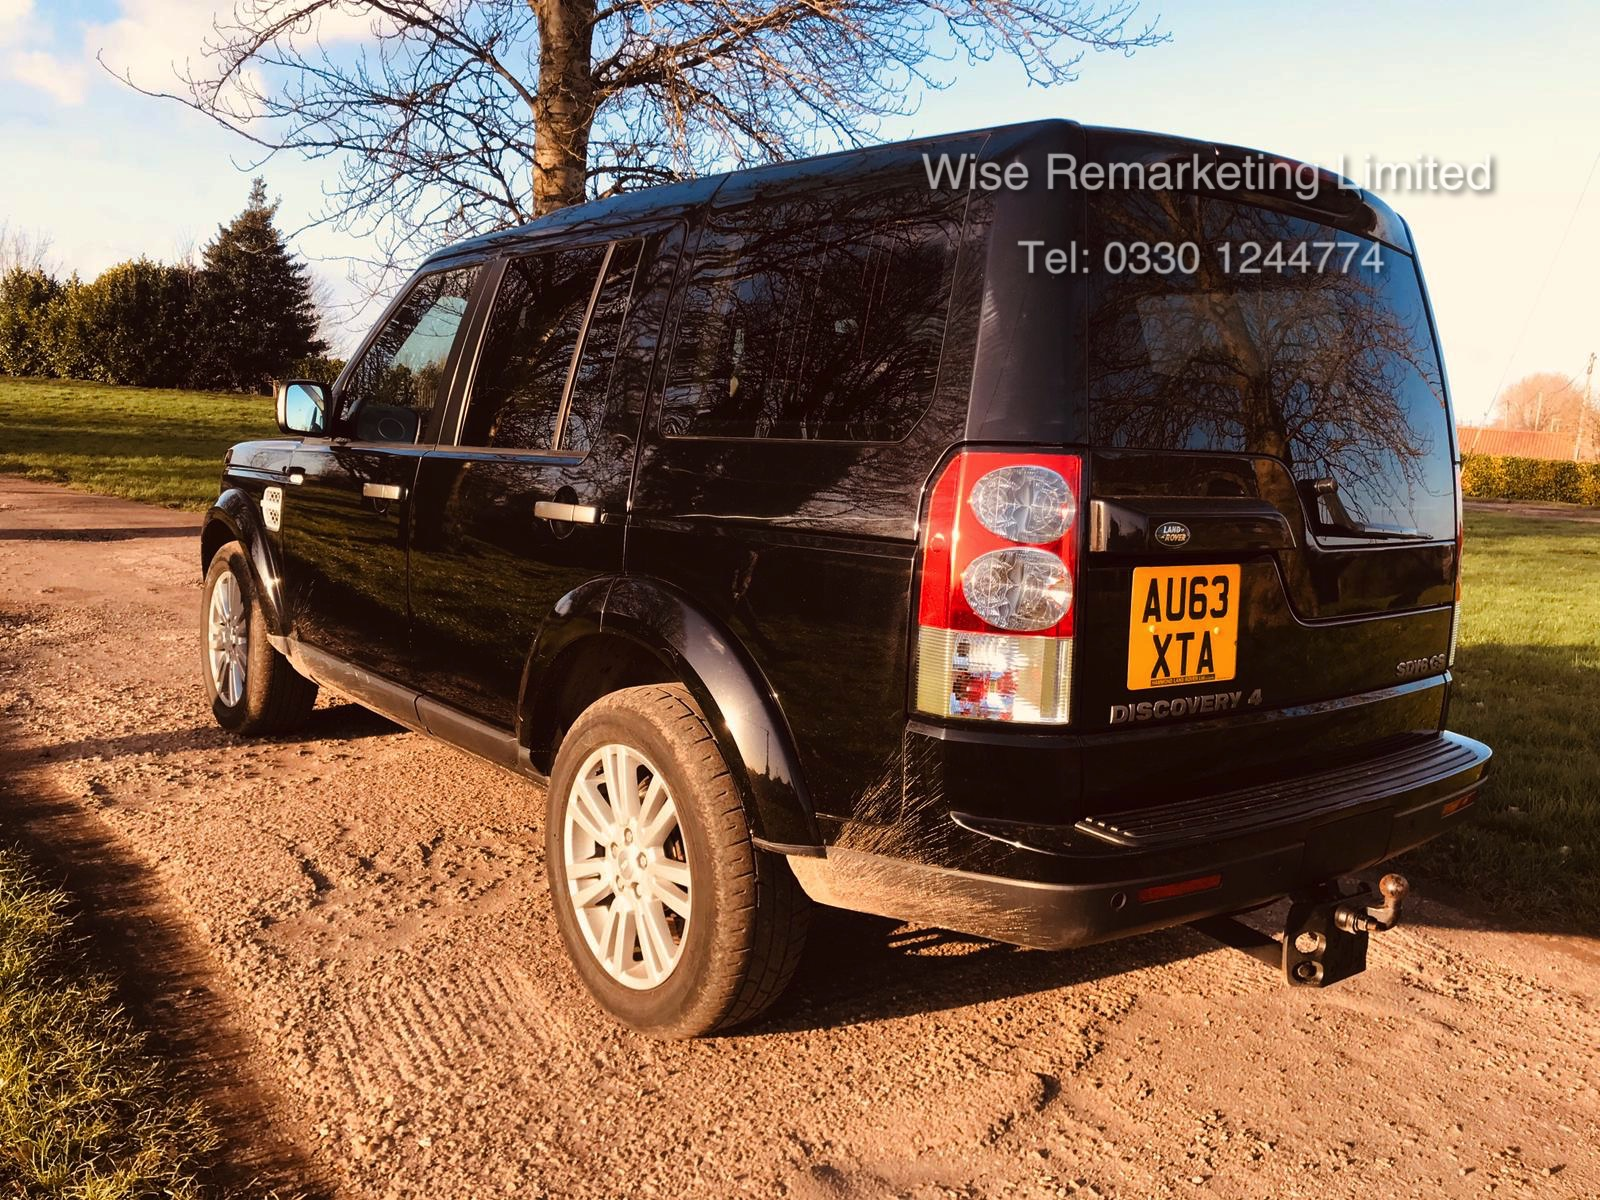 (RESERVE MET) Land Rover Discovery GS 3.0 SDV6 Auto - 2014 Model - 7 Seater - 1 Owner From New - Image 4 of 21